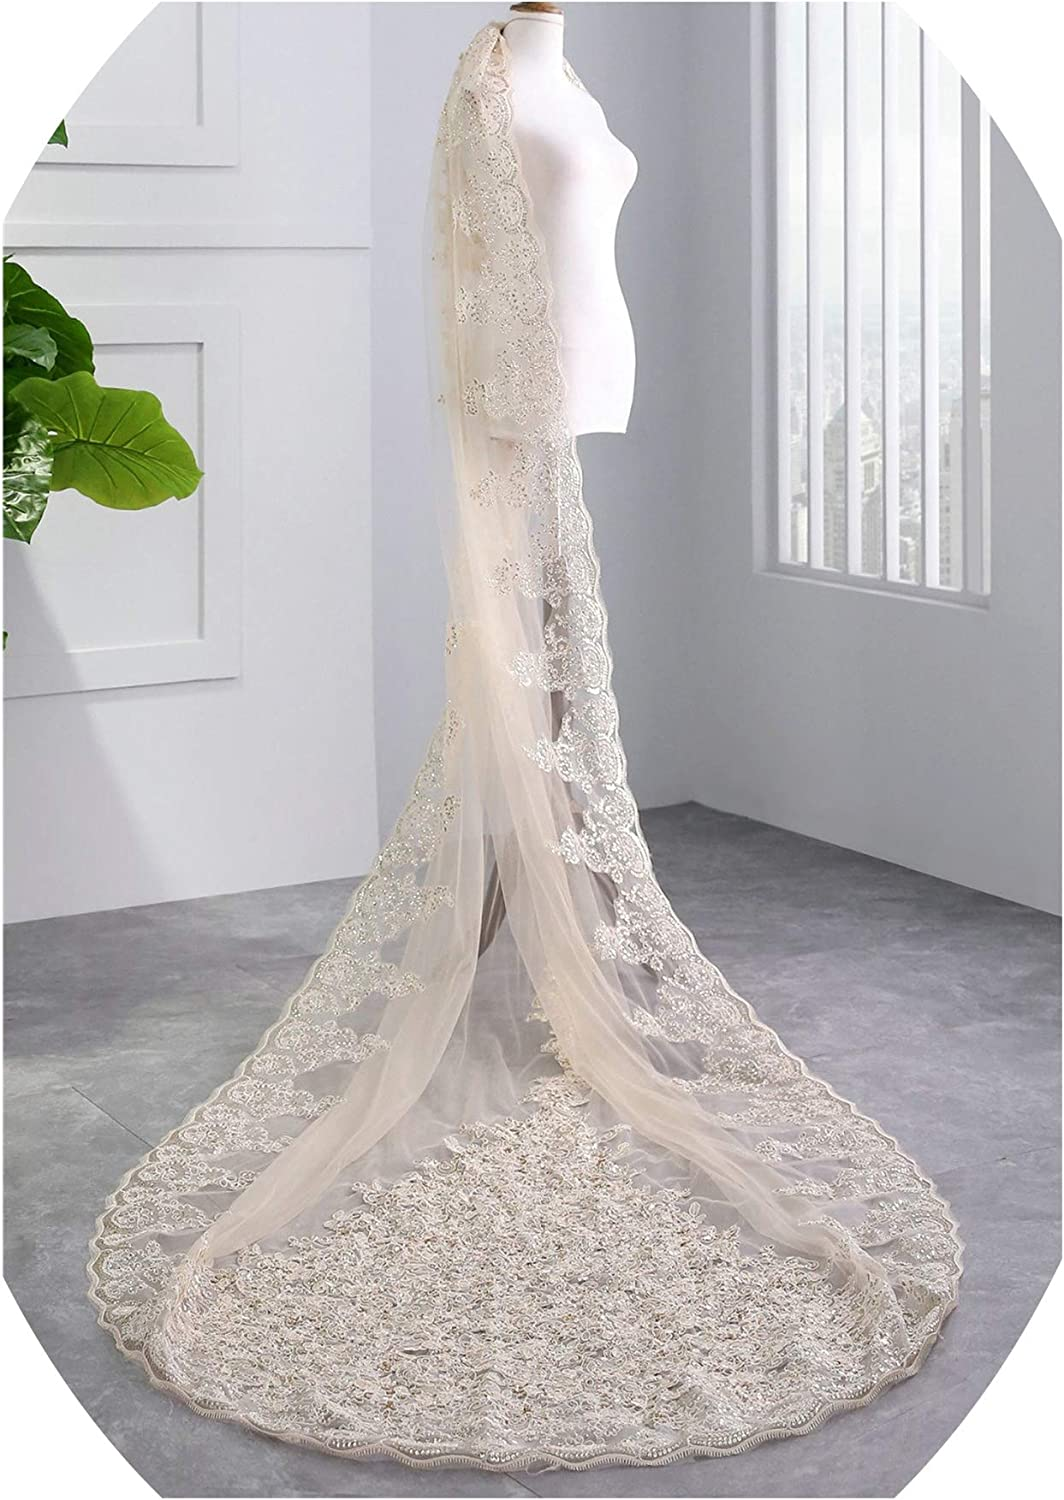 Wedding Veils Long Lace Sequins Ivory White Luxury Bridal Veils for Bride Soft Tulle One Layer voile mariage,Ivory,300cm